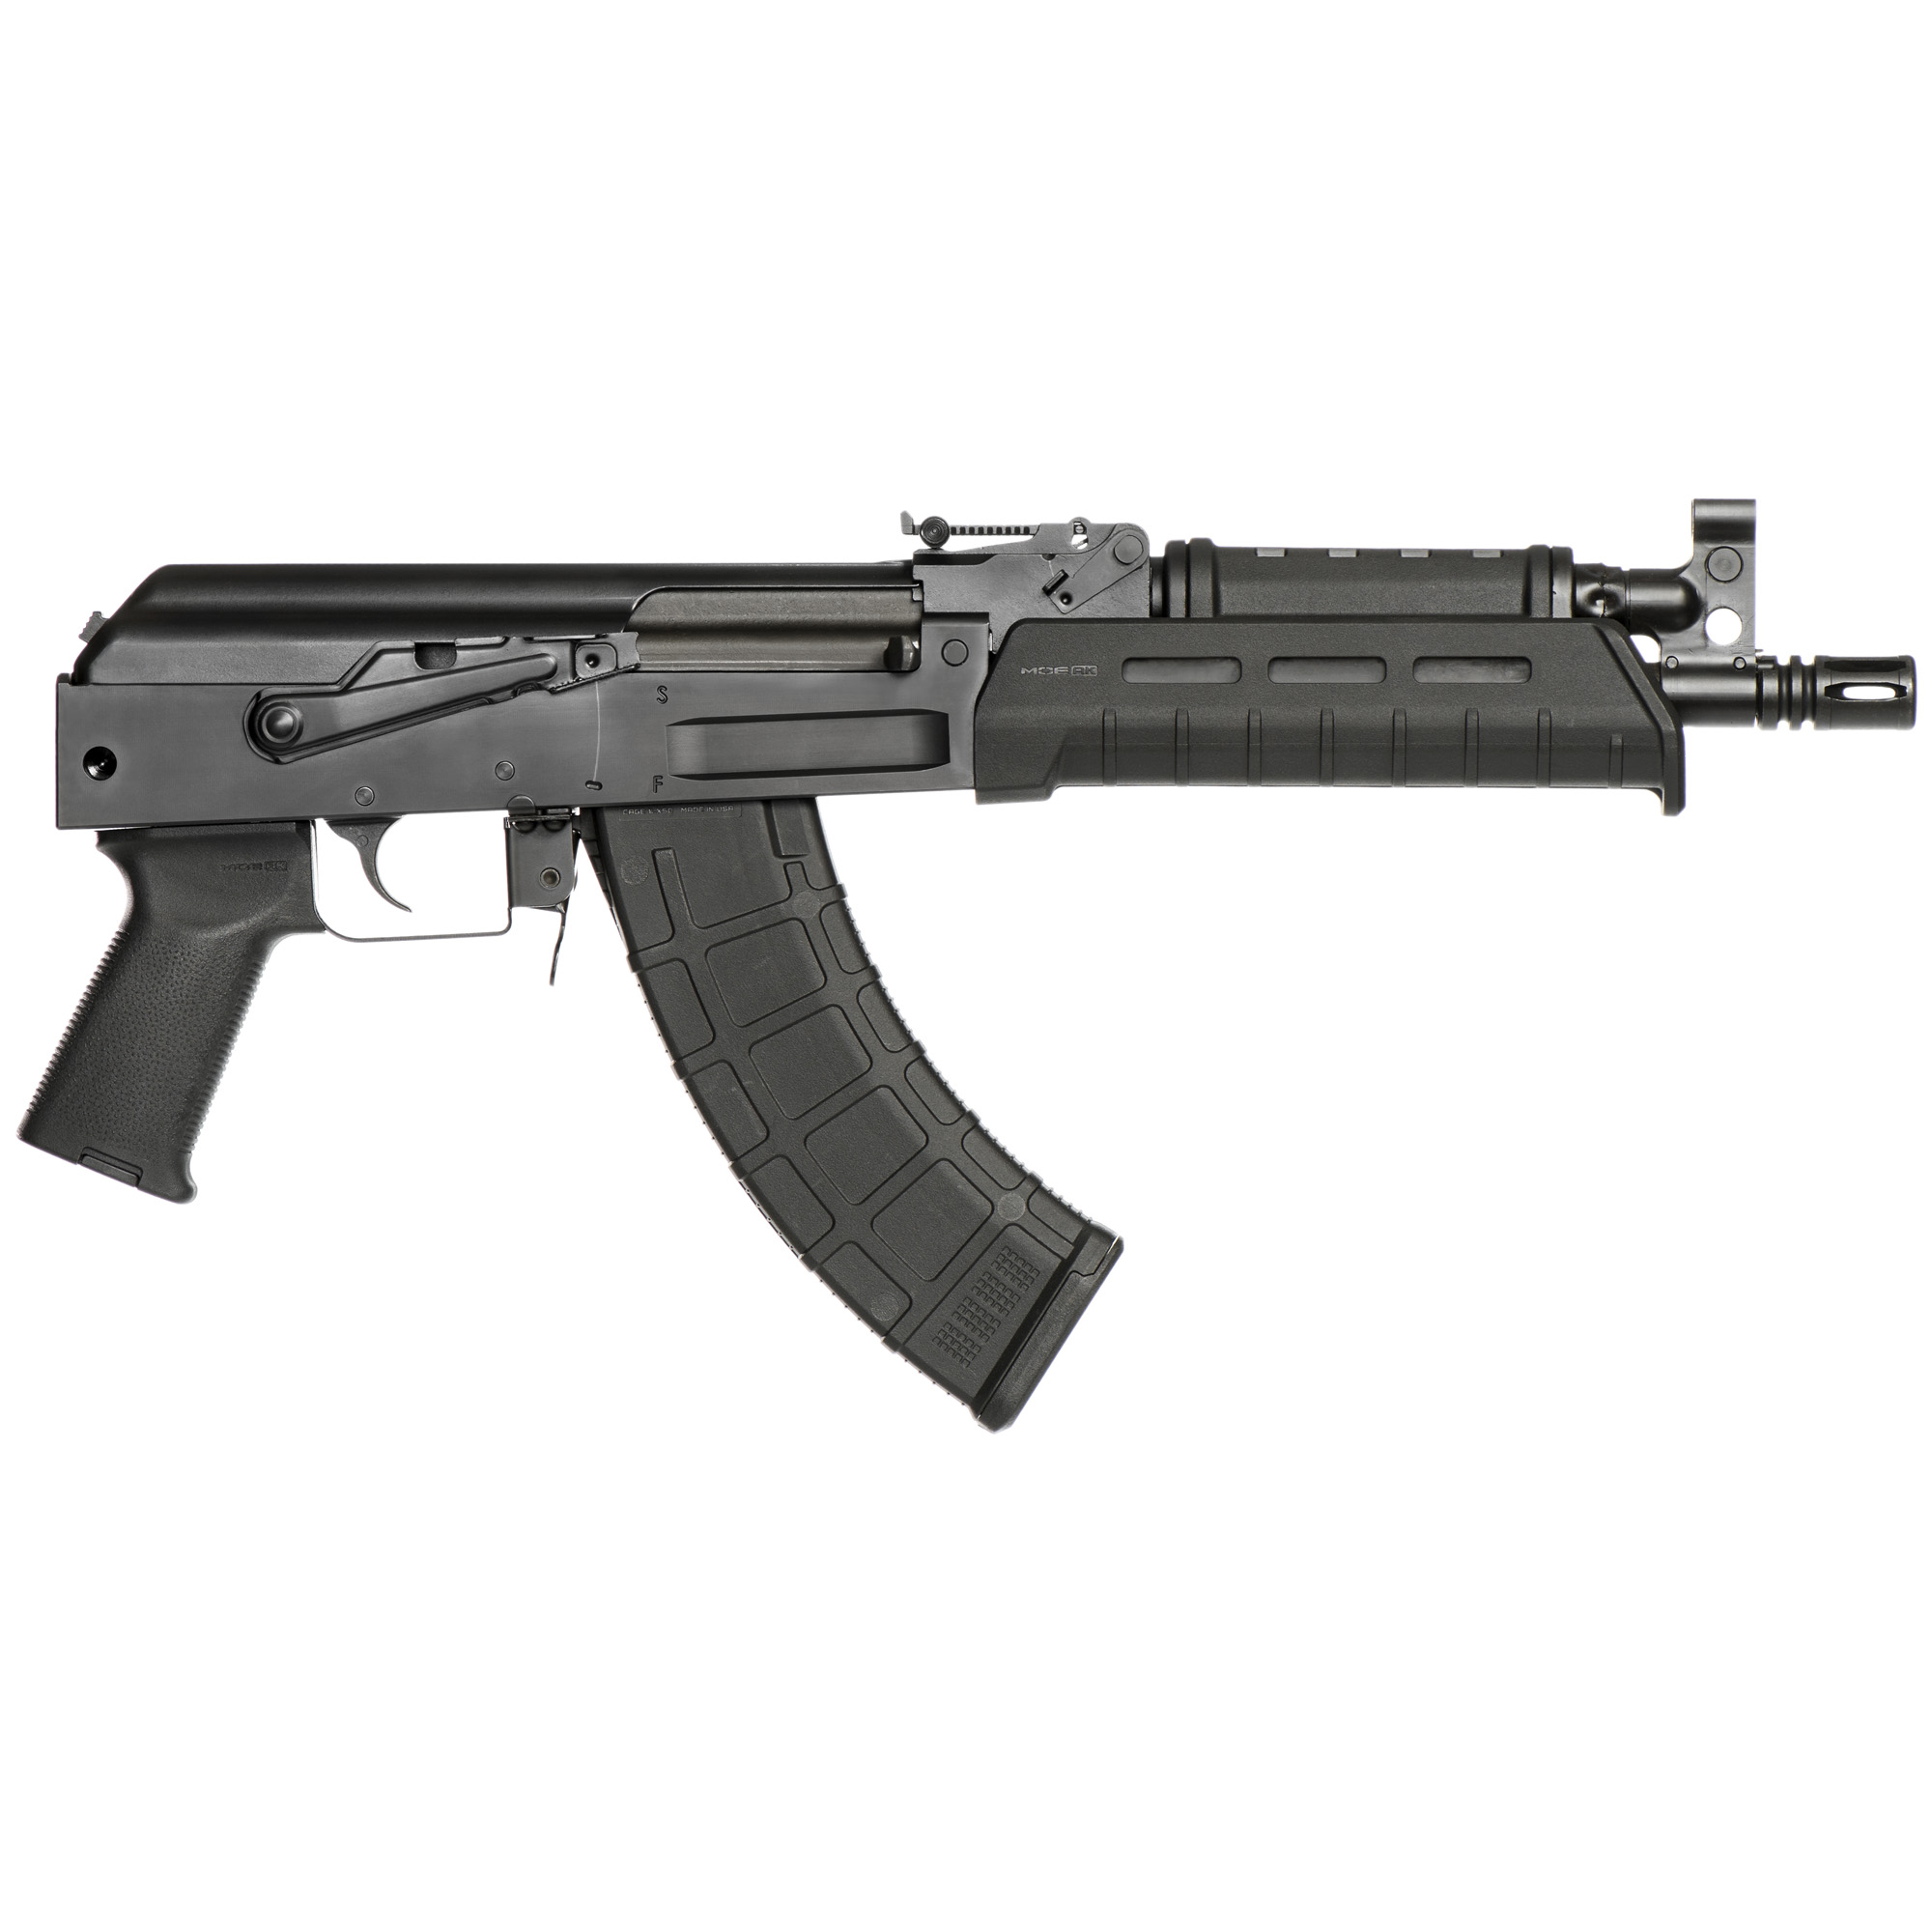 """The firepower and reliability of an AK-47 packed into pistol form makes the C39v2 Pistol a perfect option for the modern prepper"""" the ultimate backup or truck gun"""" or simply something for a day of ultimate fun at the range."""